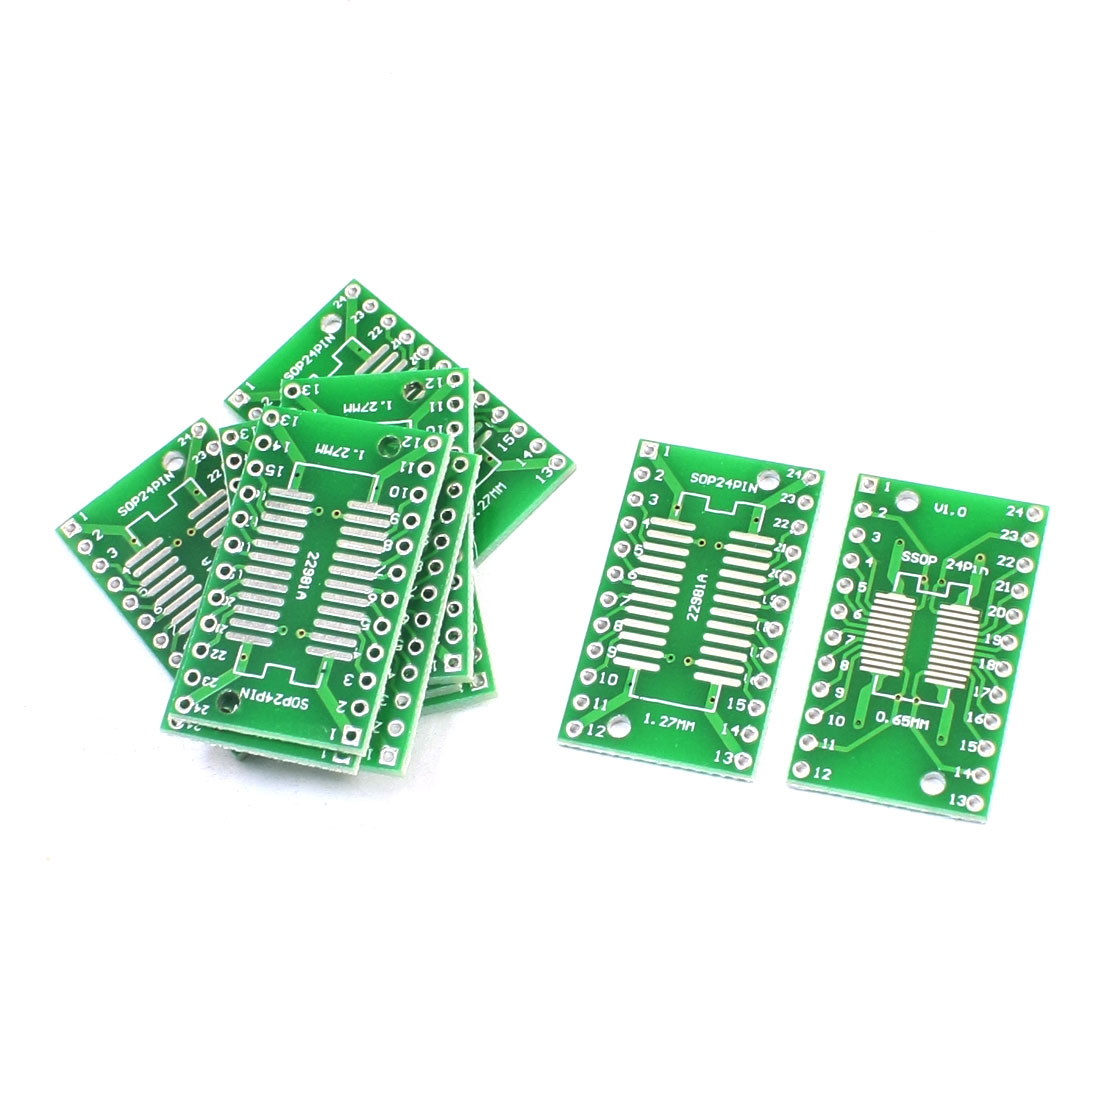 10Pcs SOP24 SSOP24 TSSOP24 0.65mm 1.27mm to DIP24 2.54mm PCB Adapter Converter